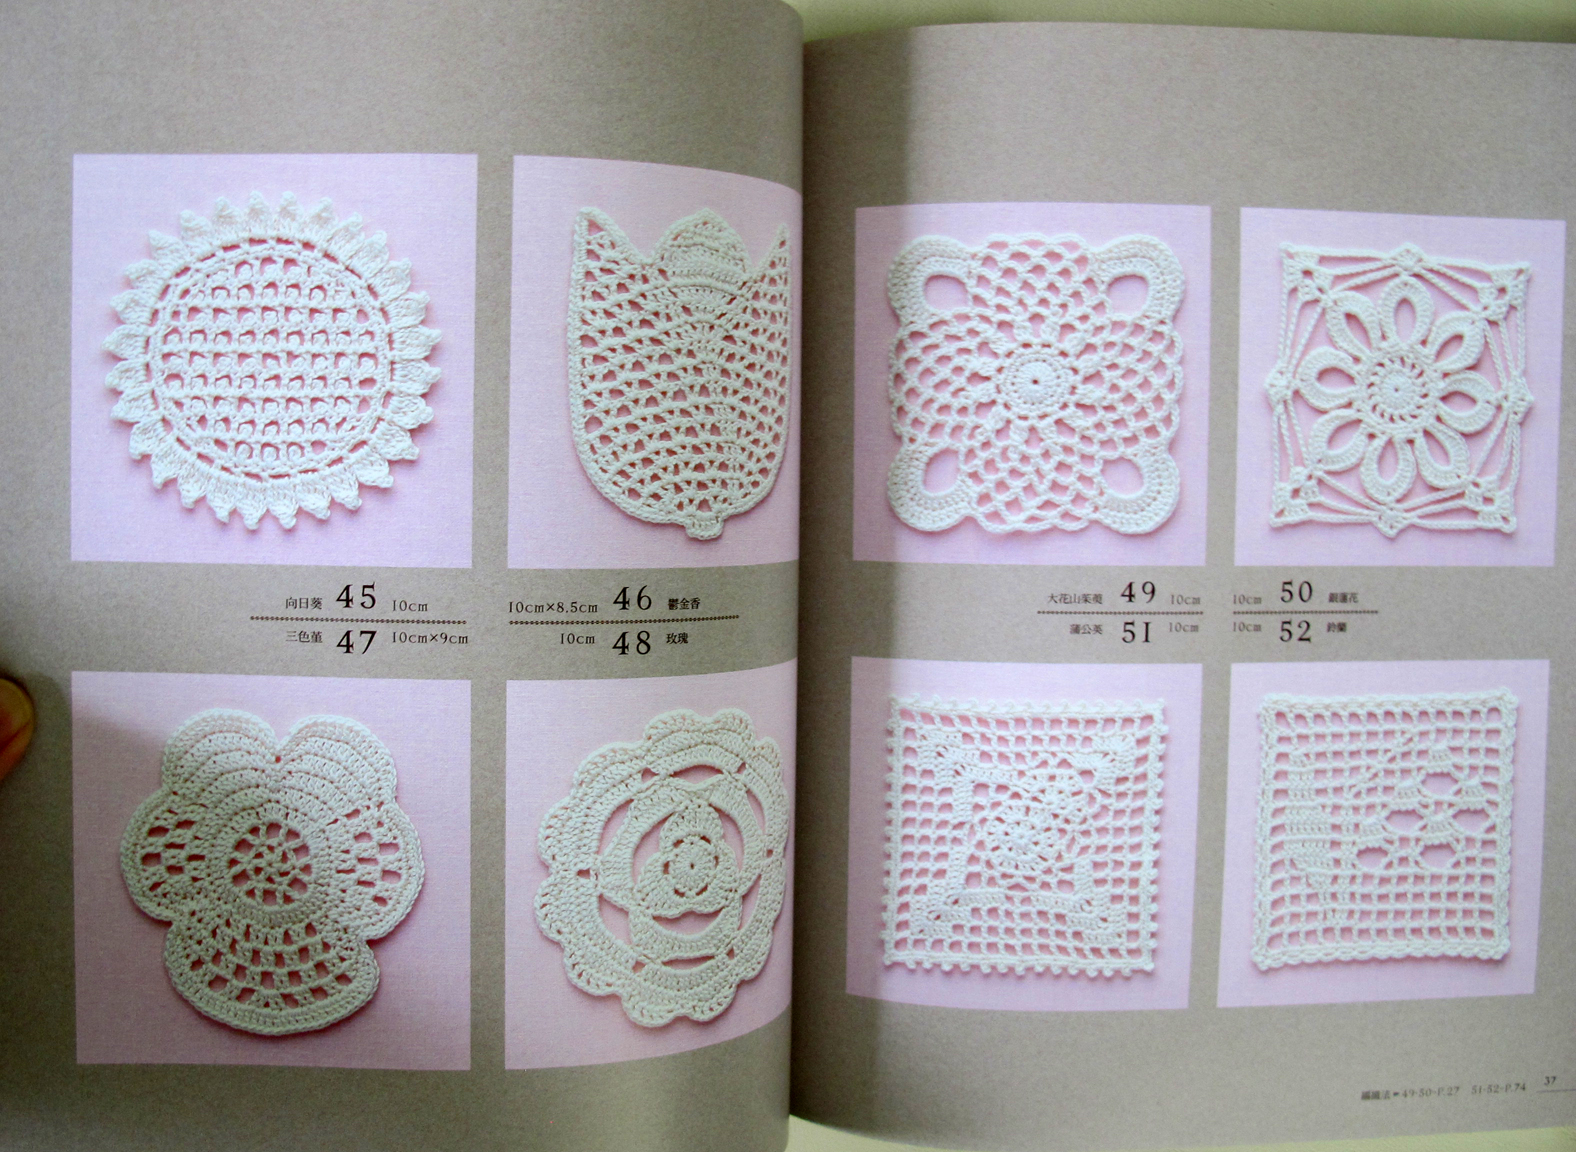 Crochet Pattern Books : ... Crochet Book - Crochet Girls Patterns Japanese Crochet Book - Crochet